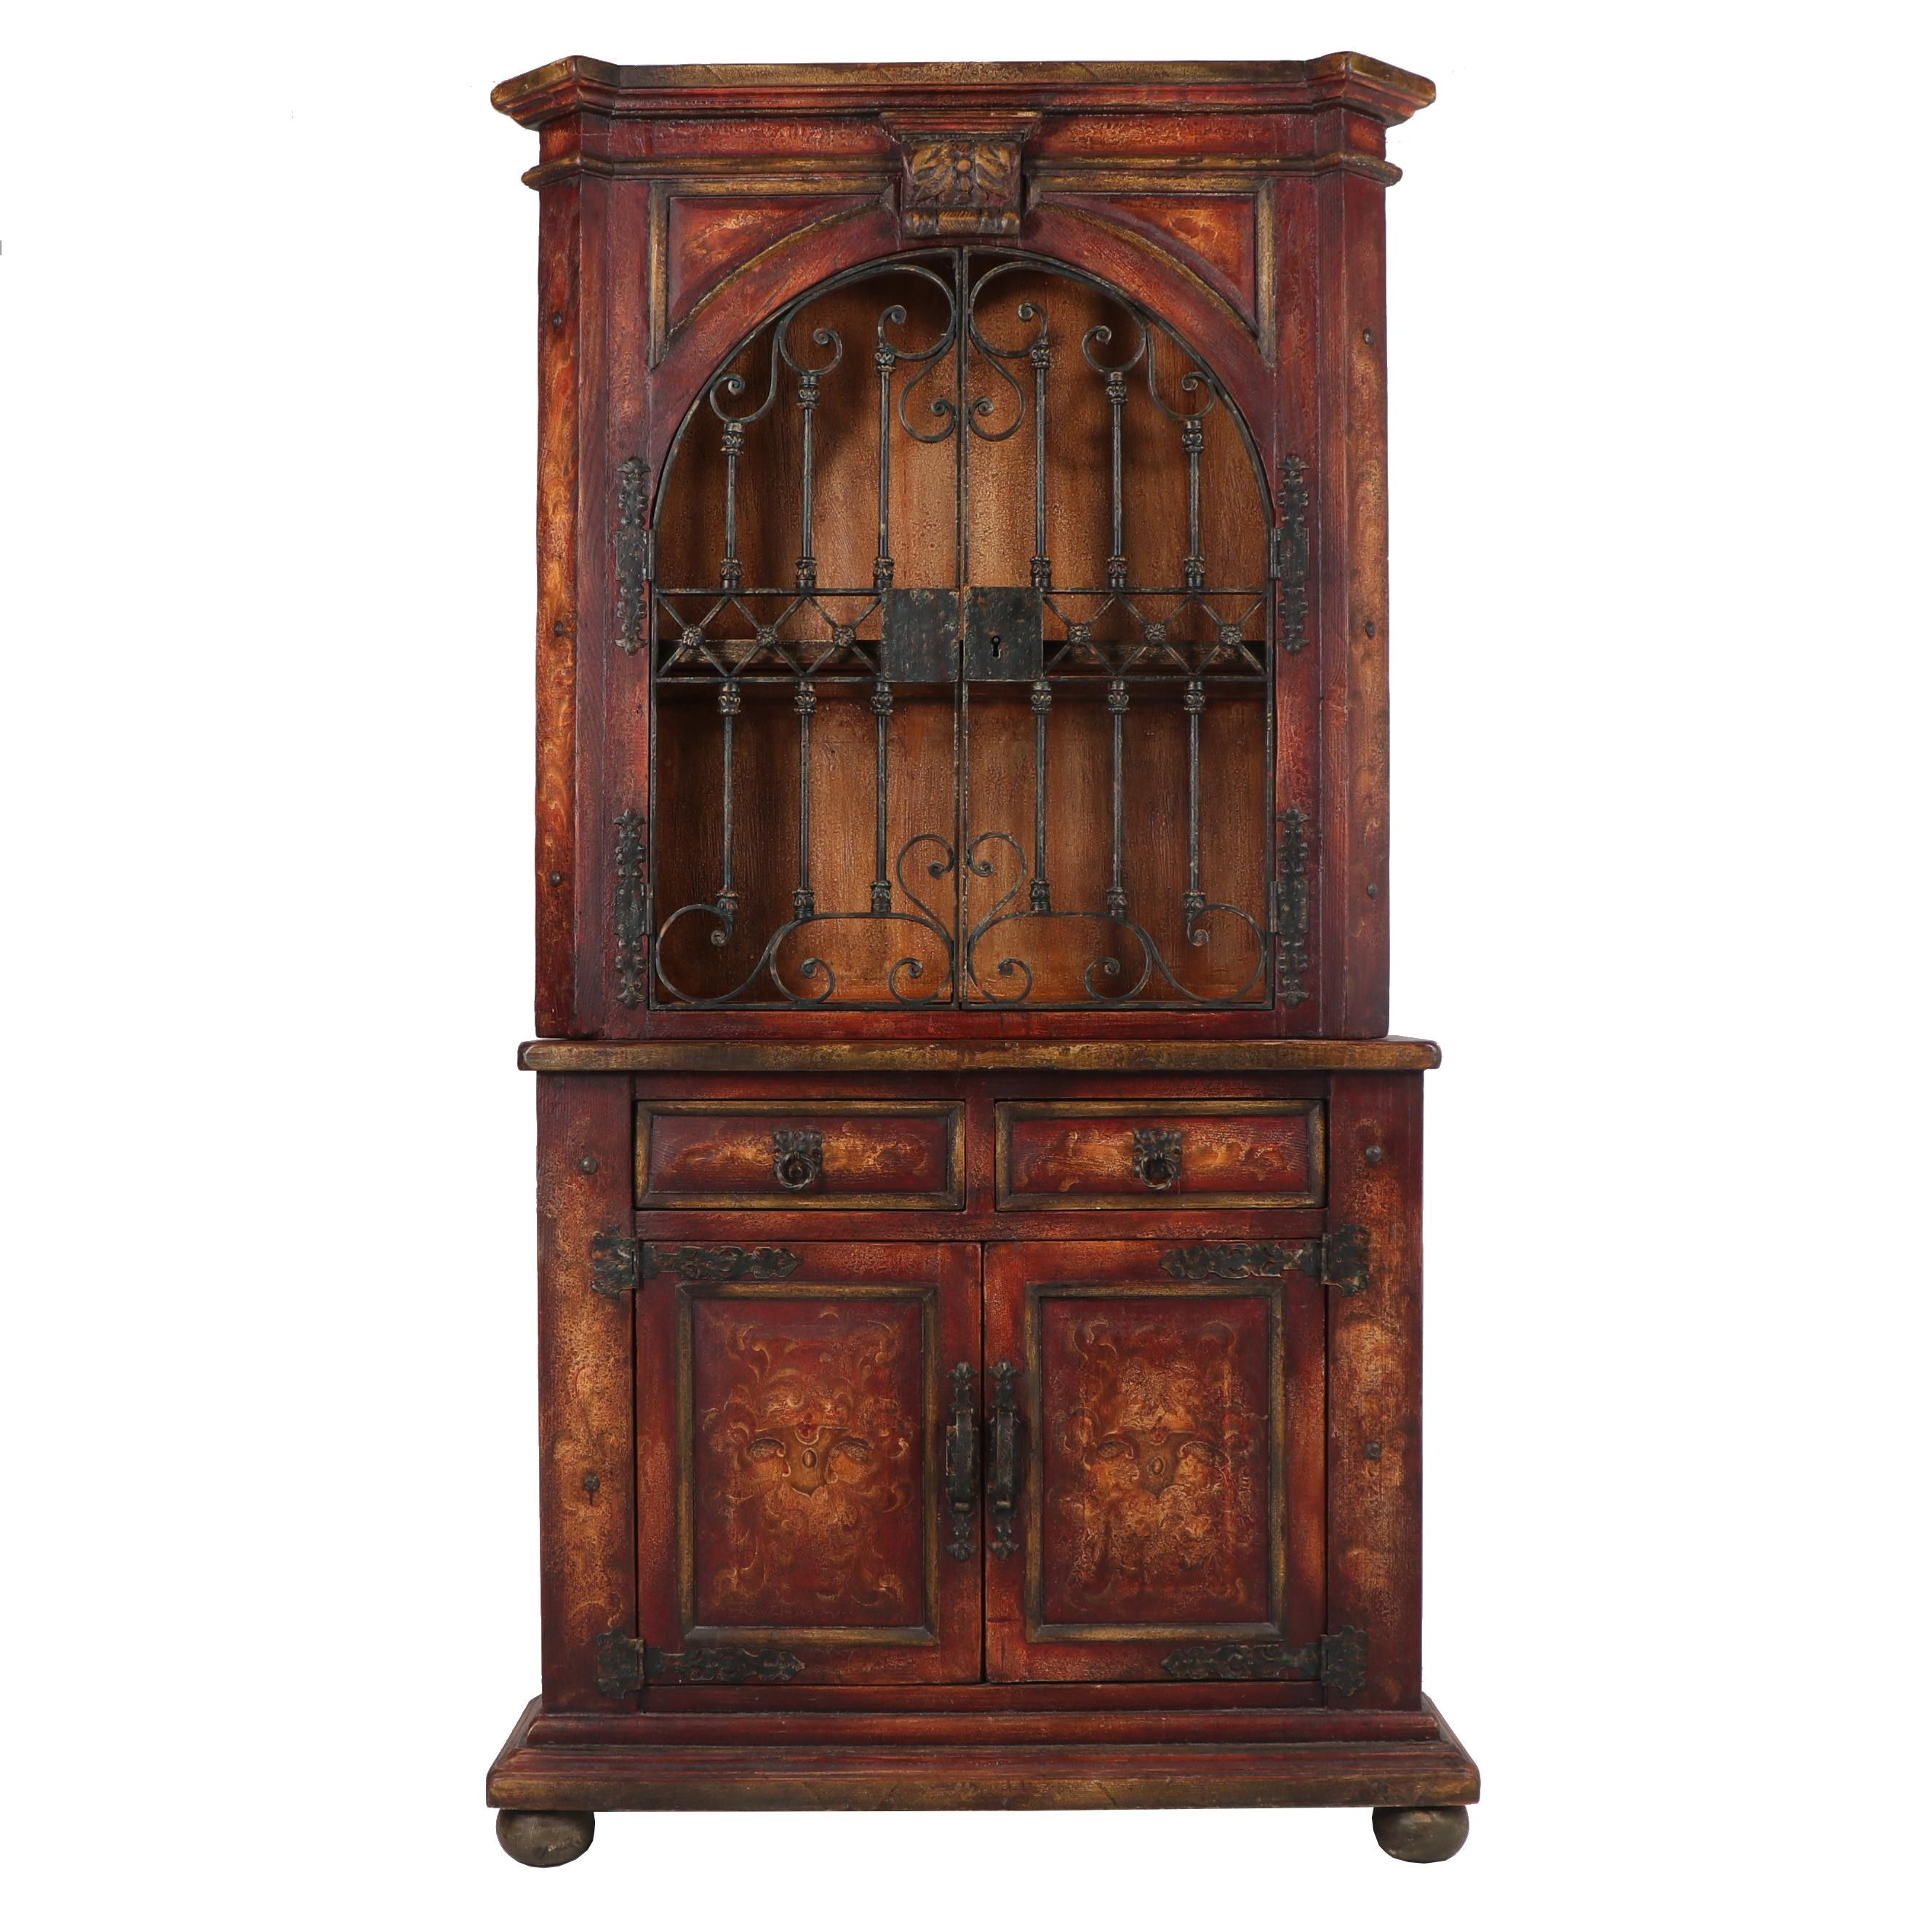 Spanish Revival Style Painted Wood and Iron China Cabinet, 21st Century